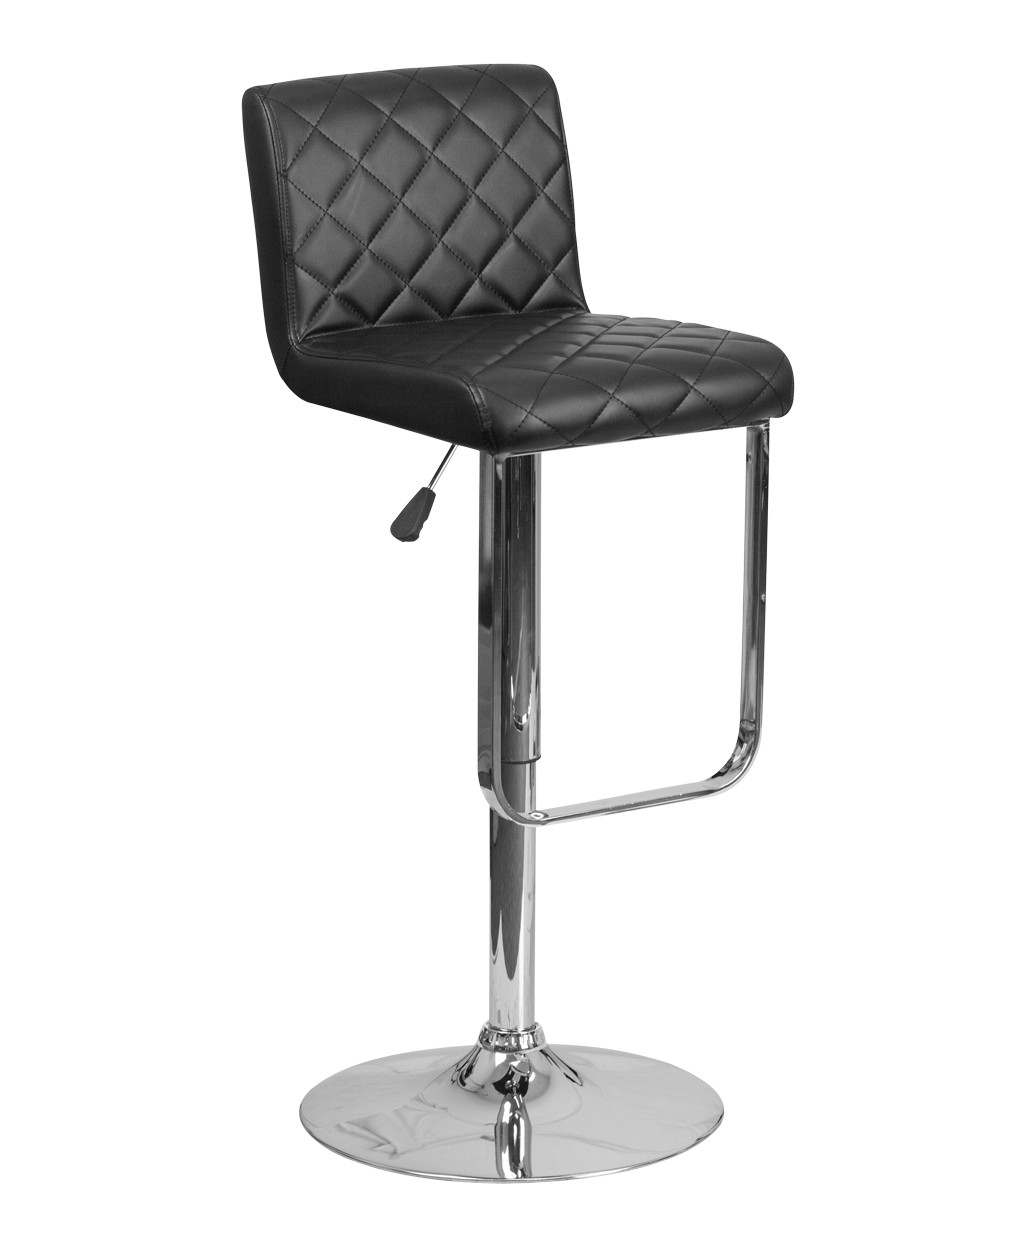 Contemporary Hex Vinyl Adjustable Stool With Chrome Base